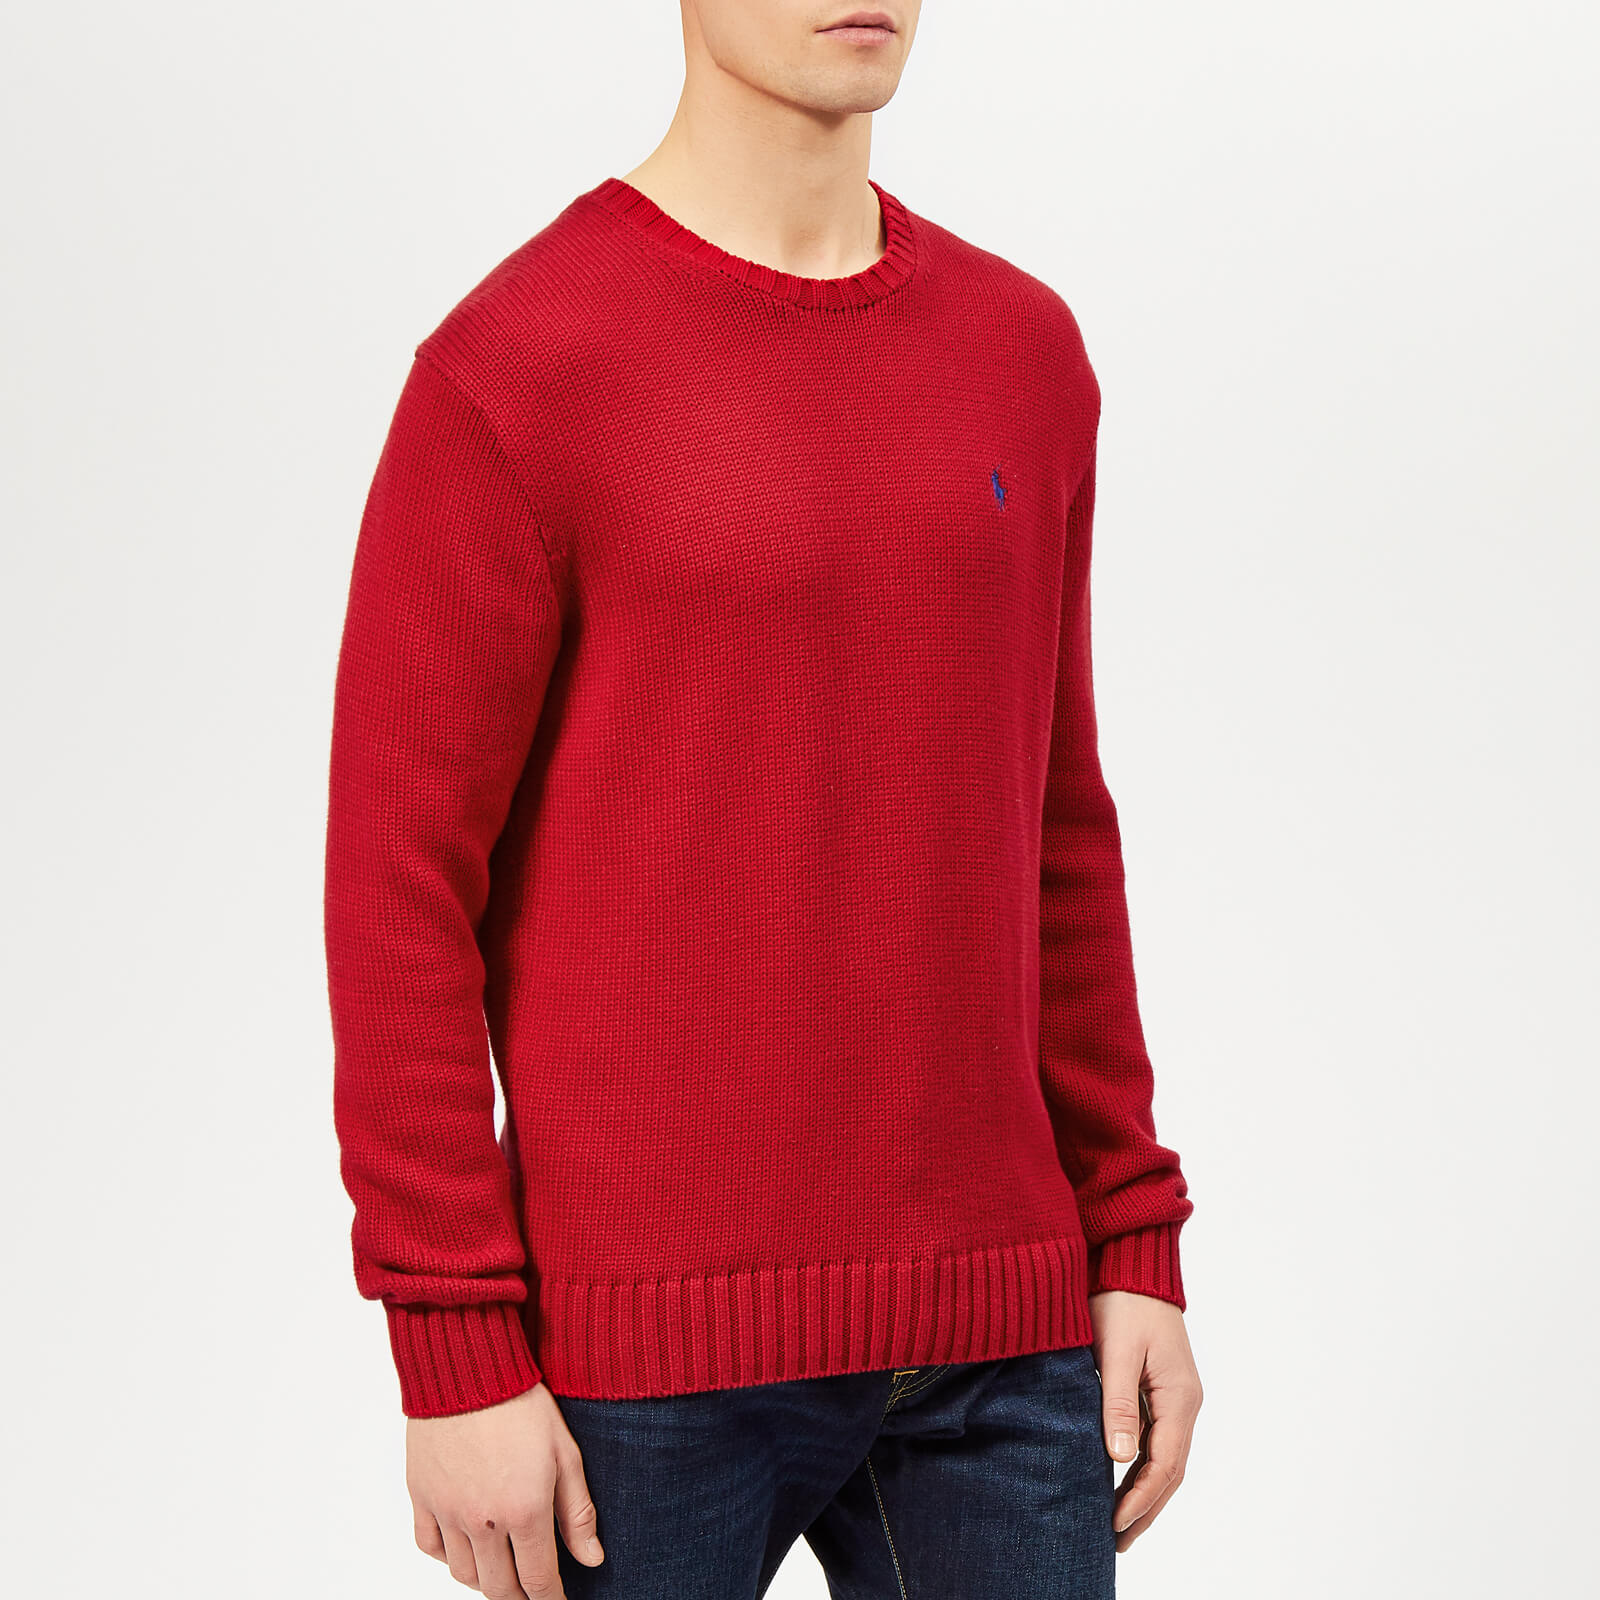 a122bf7c1 Polo Ralph Lauren Men s Crew Neck Knitted Jumper - Samba Red - Free UK  Delivery over £50